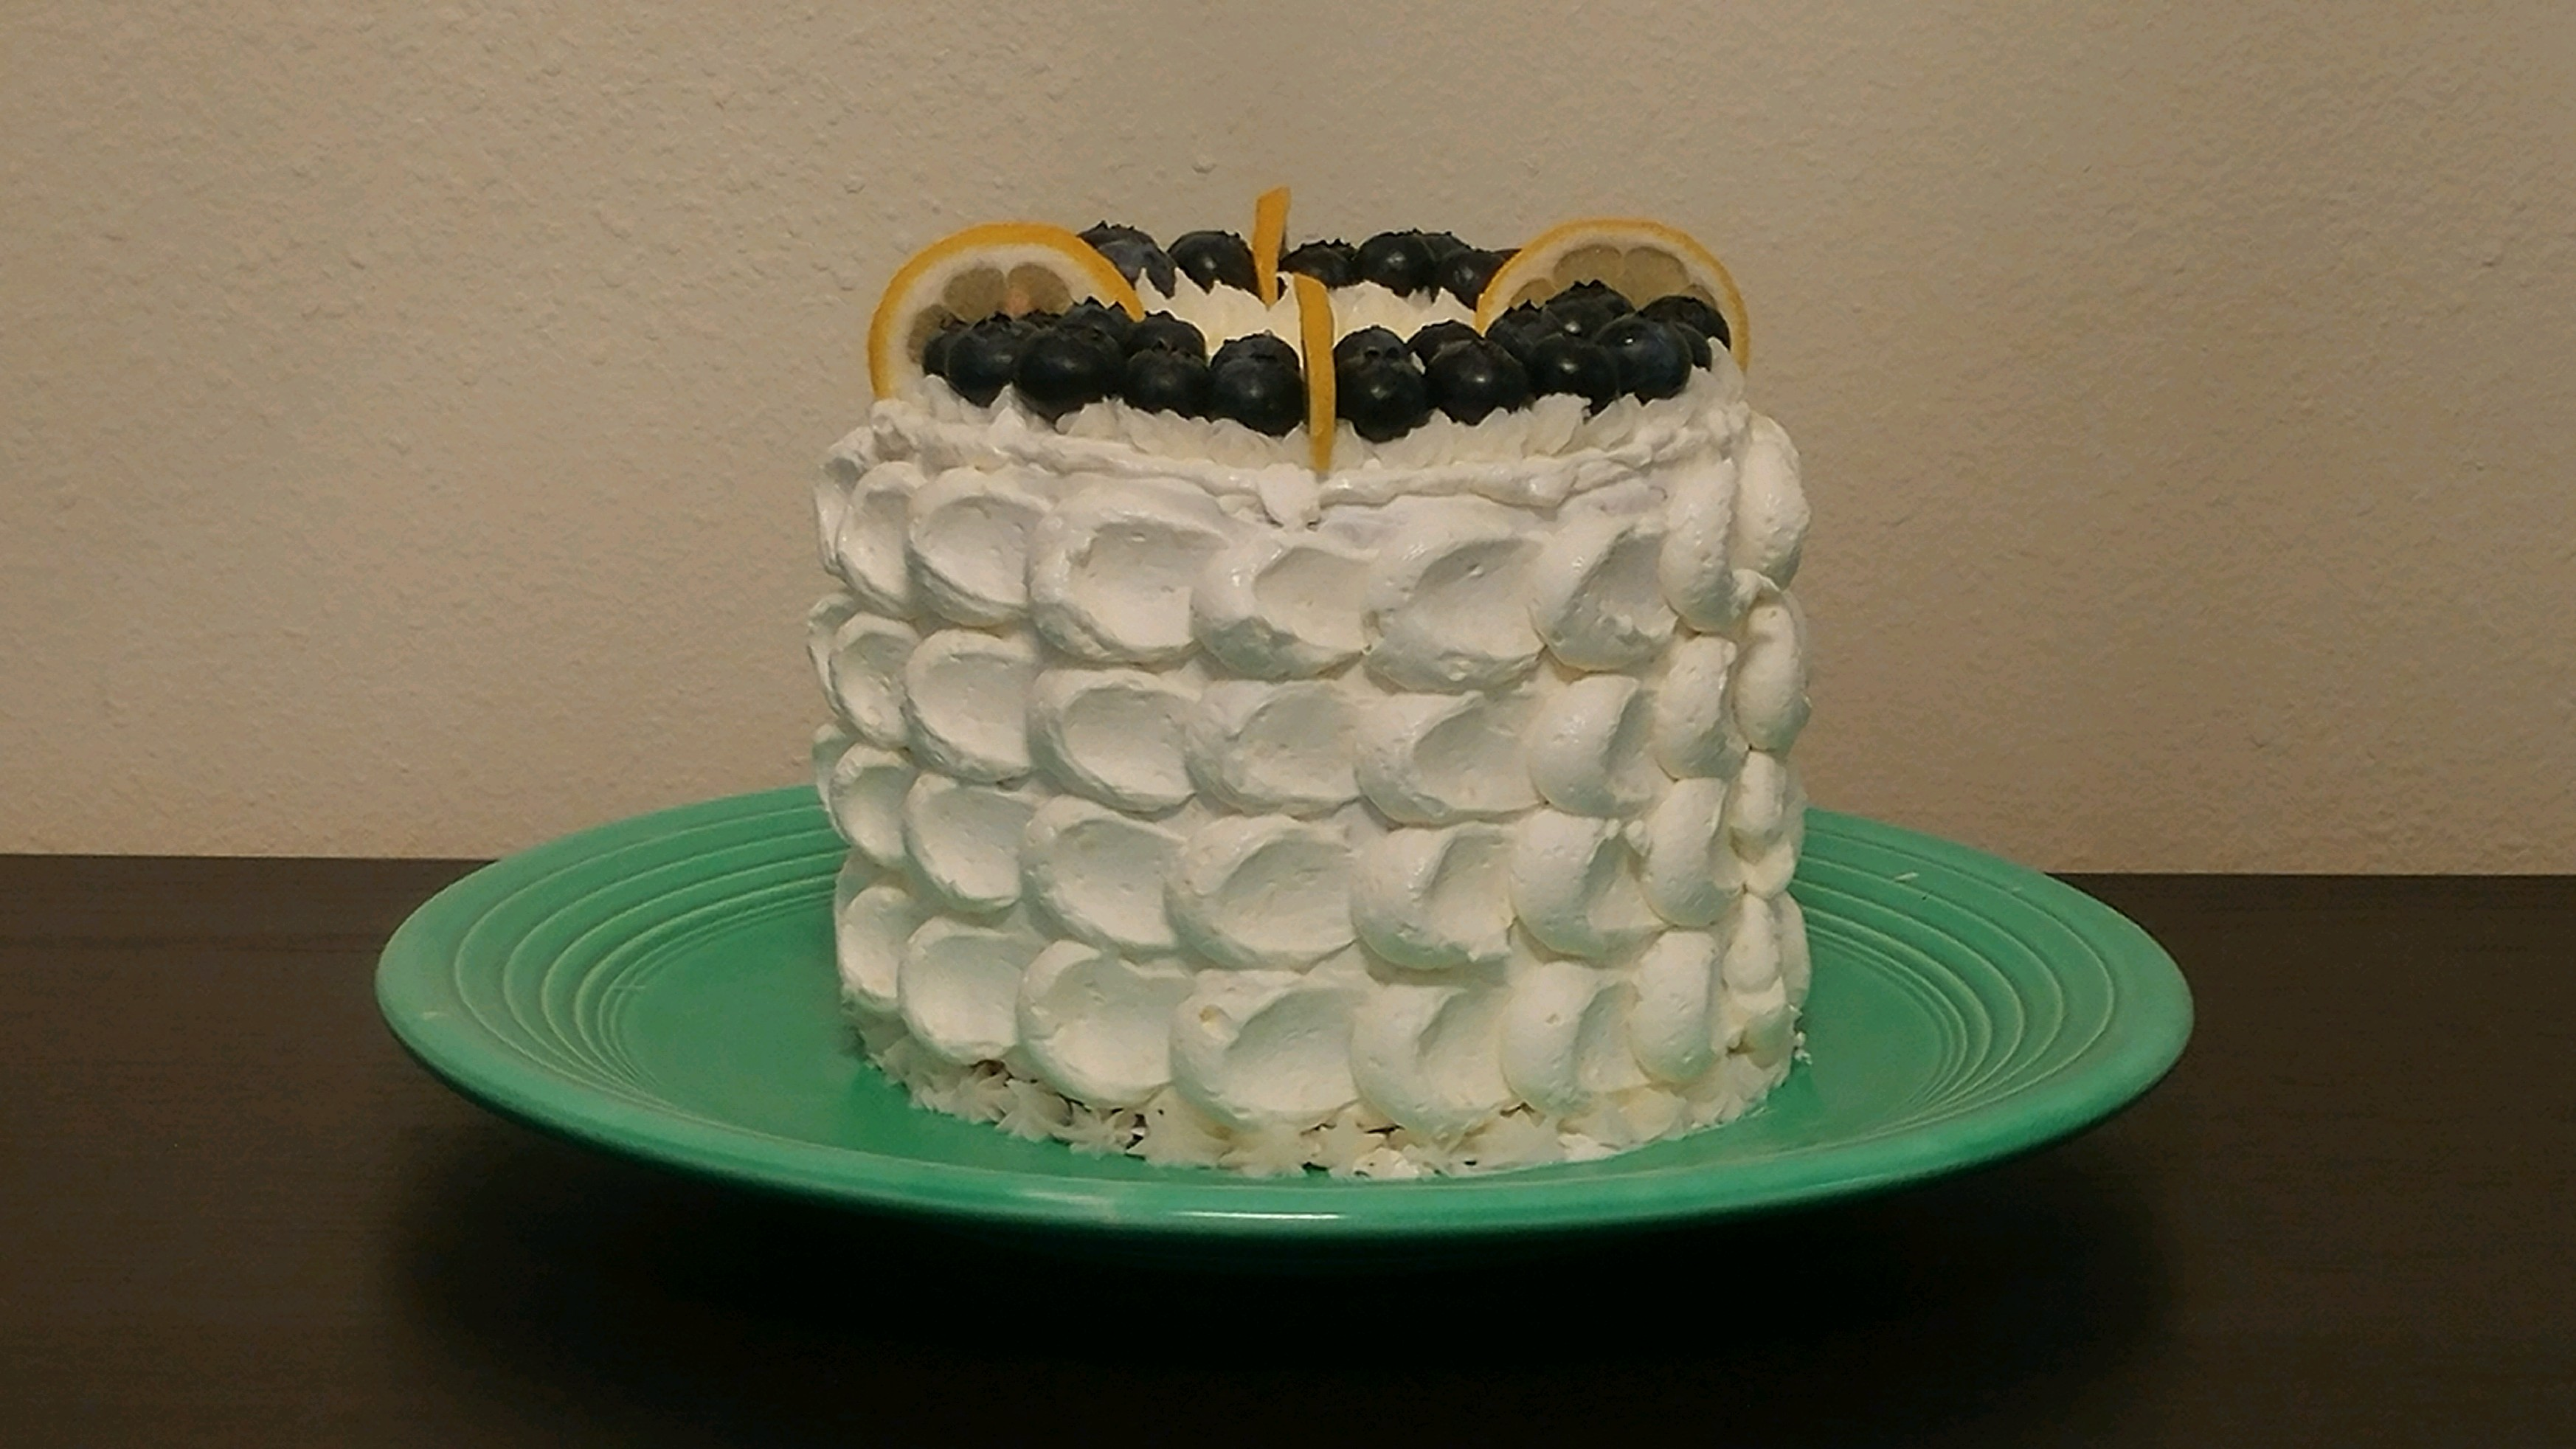 Blueberry lemon cake with lemon meringue buttercream